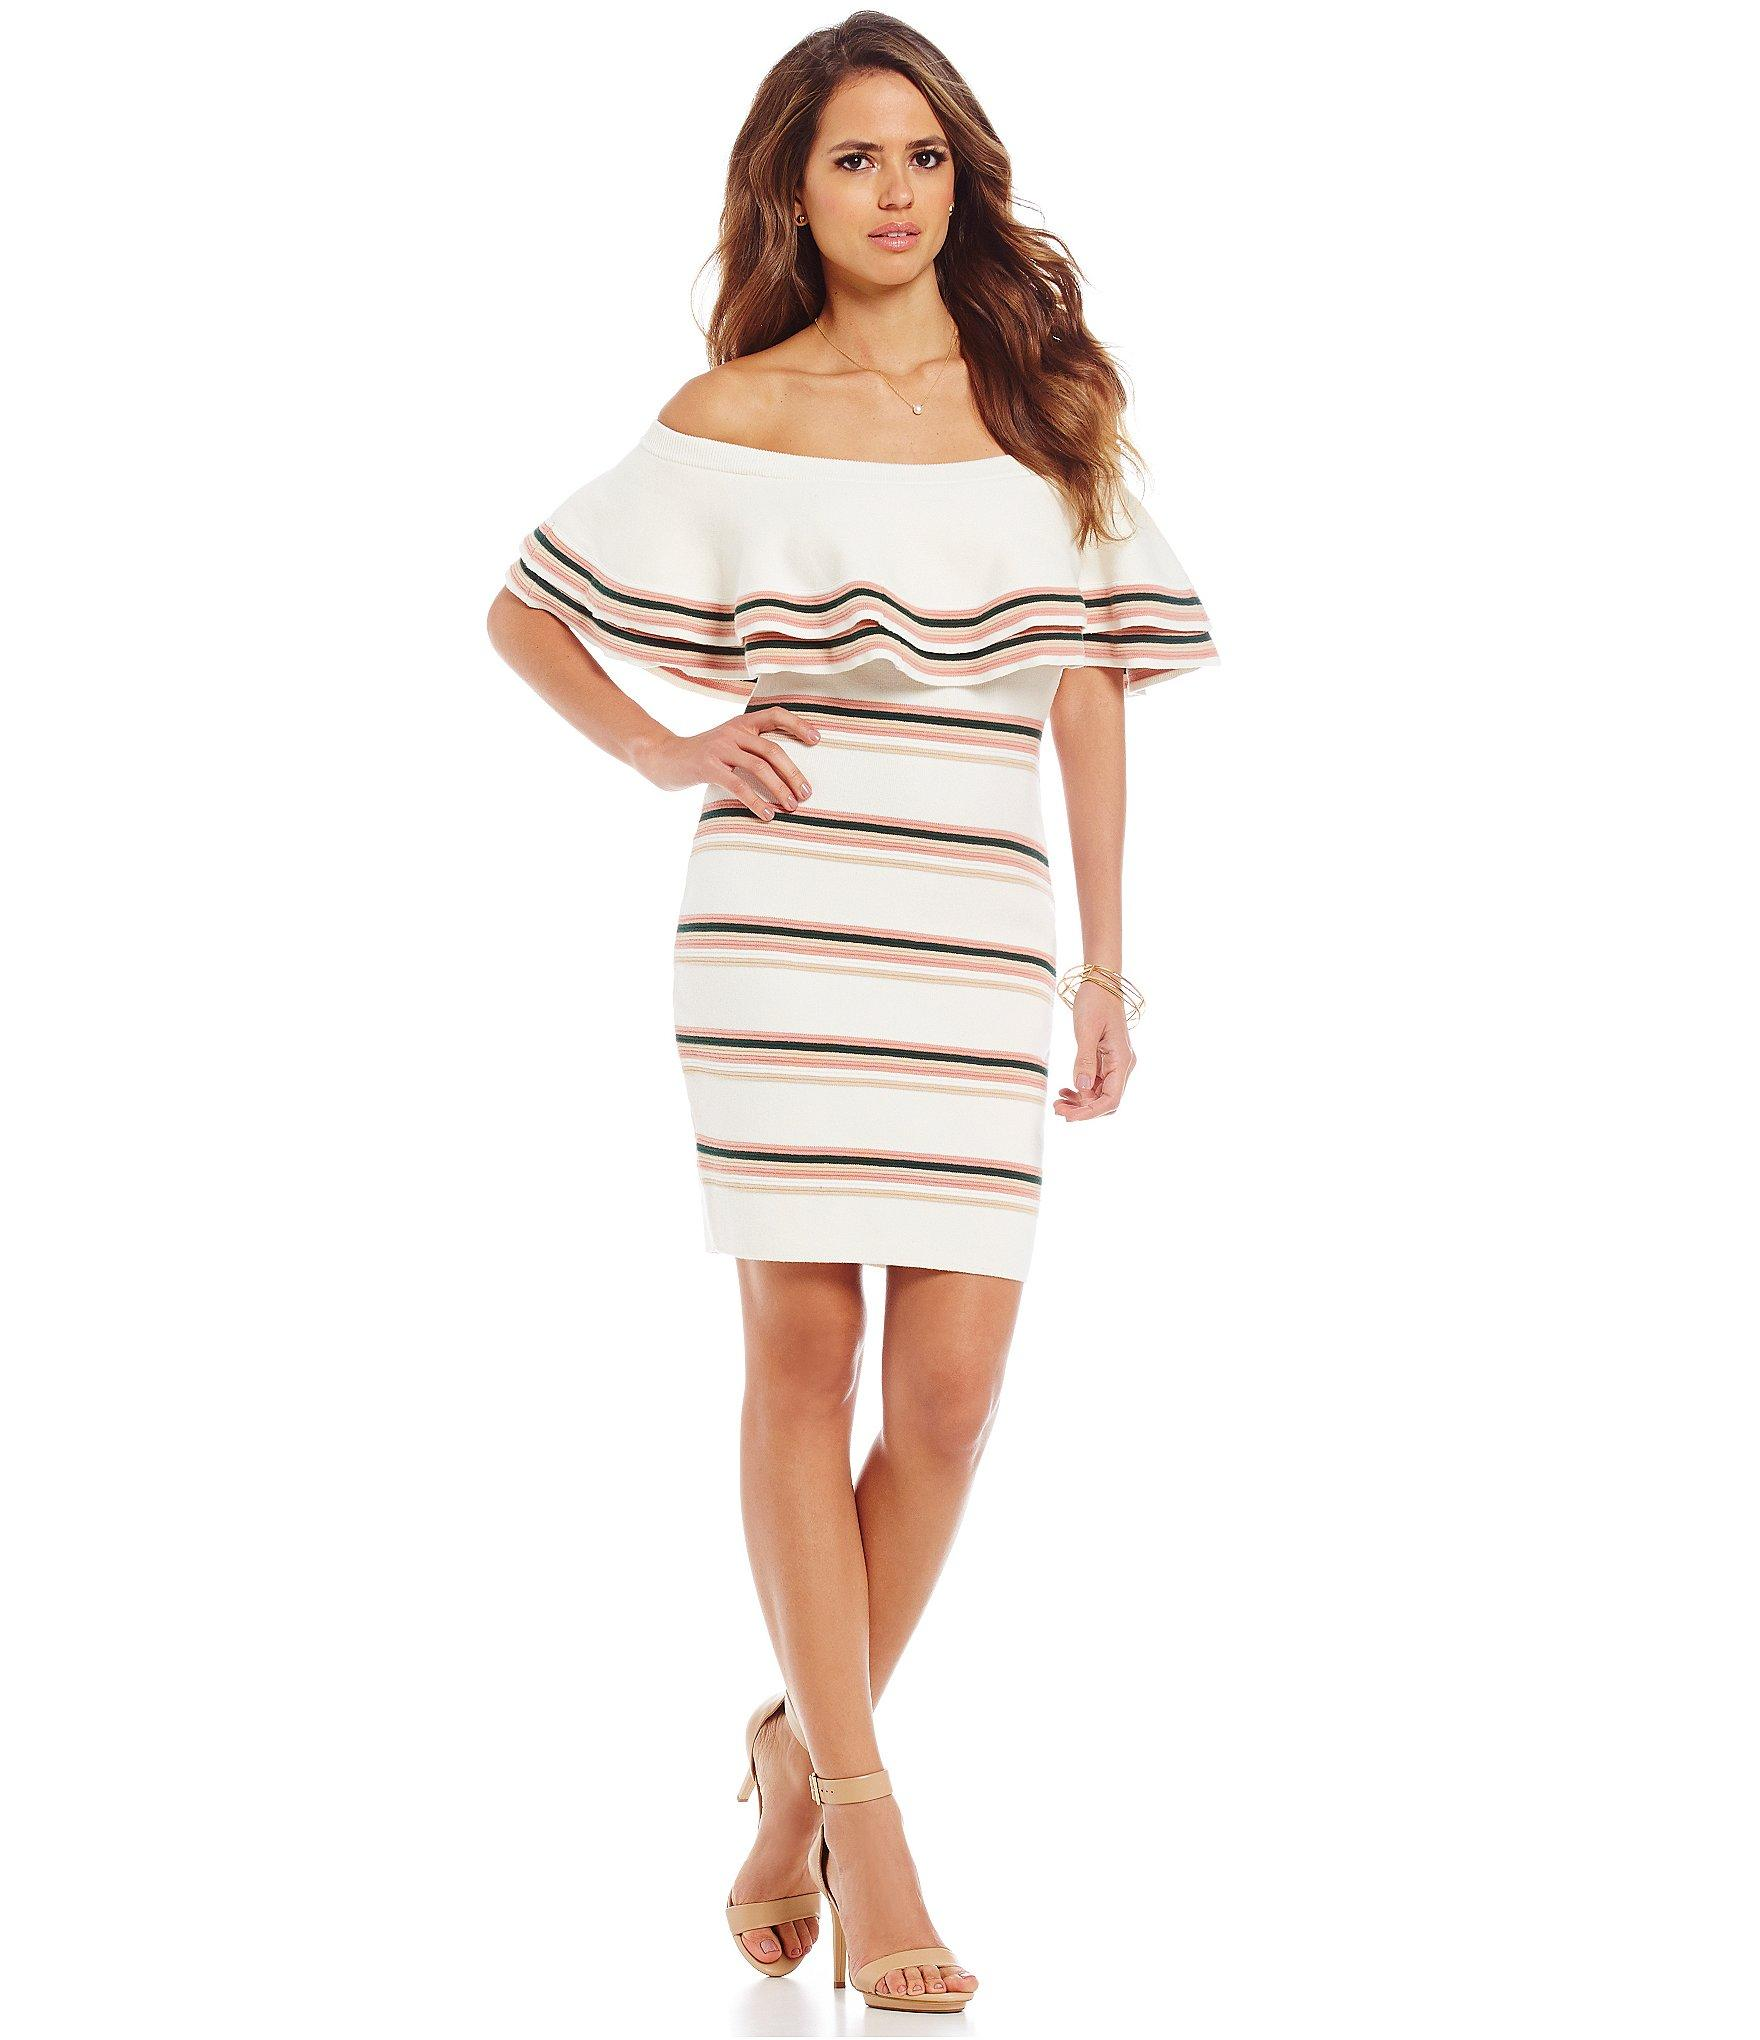 White Dresses Dillards Photo Album - Newyorkfashion